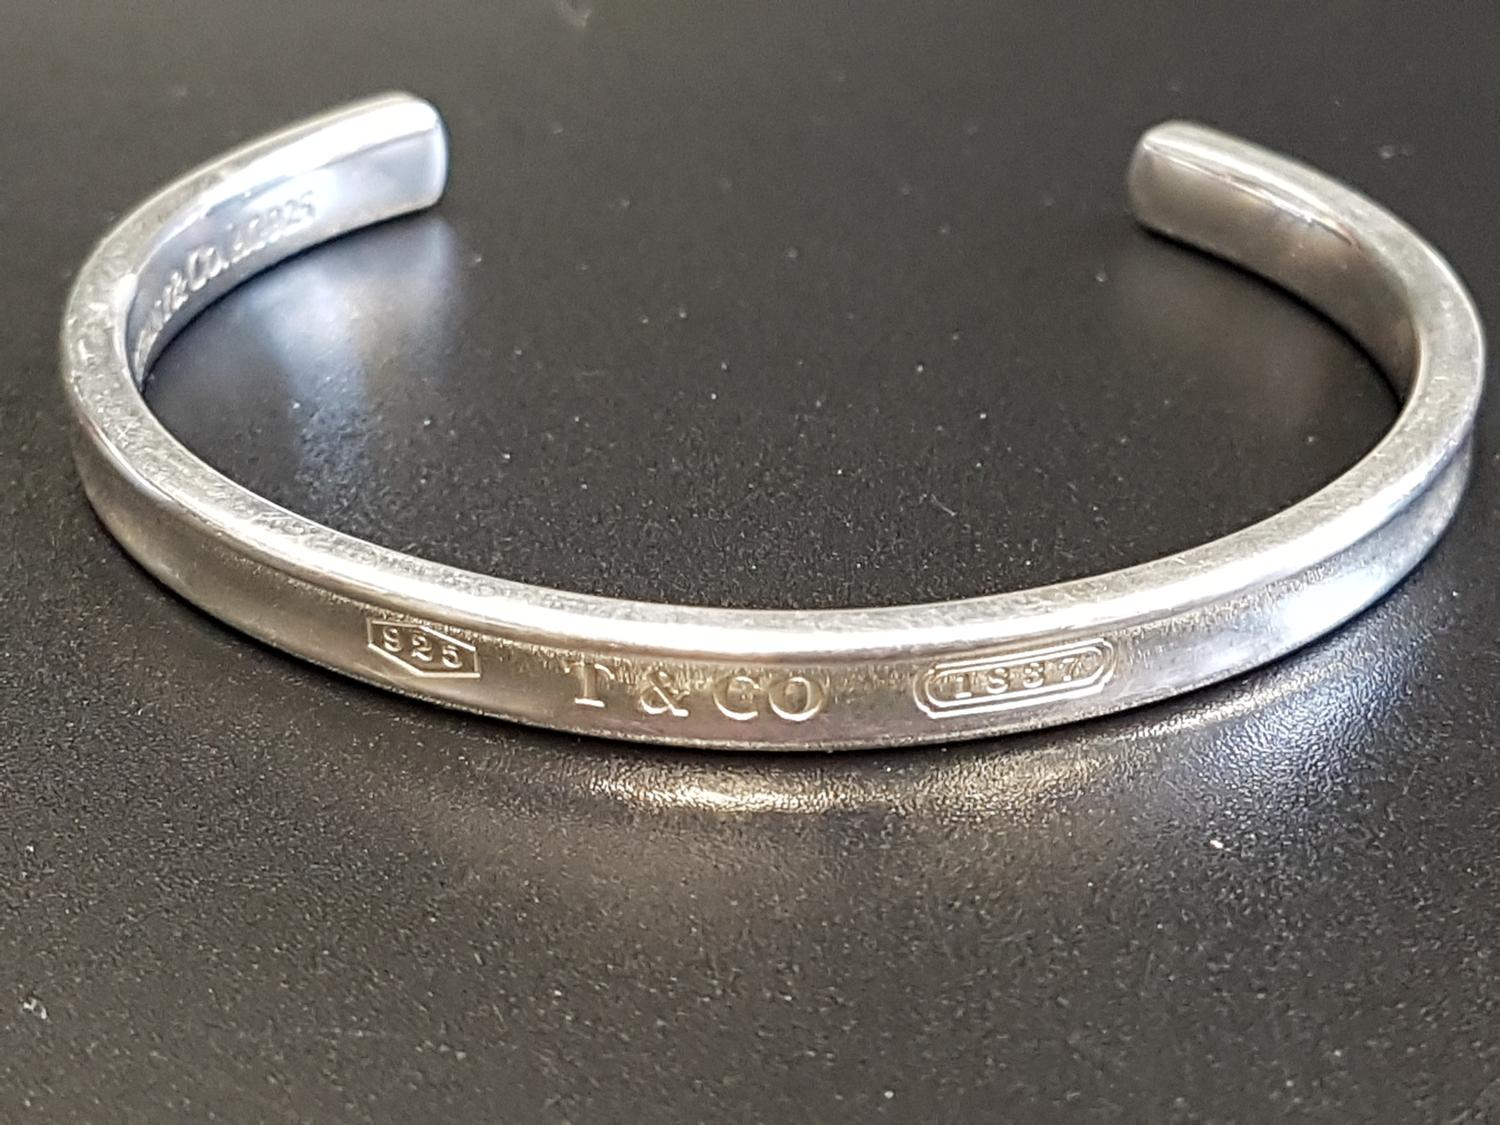 Lot 6 - TIFFANY & CO. SILVER 'TIFFANY 1837' CUFF BANGLE inscribed with 925, T&CO, and 1837 (the year Tiffany